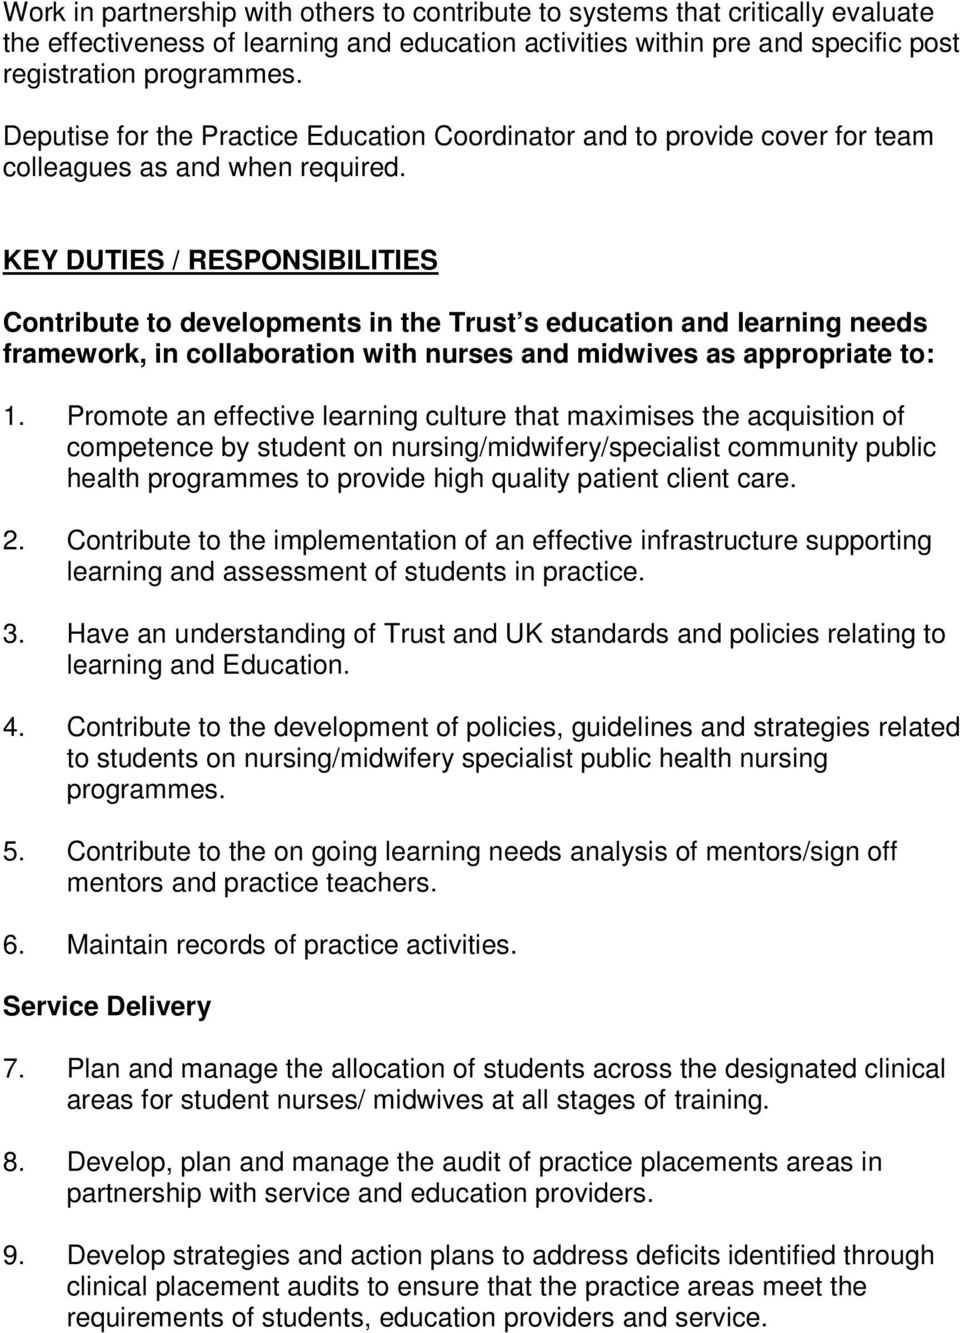 KEY DUTIES / RESPONSIBILITIES Contribute to developments in the Trust s education and learning needs framework, in collaboration with nurses and midwives as appropriate to: 1.